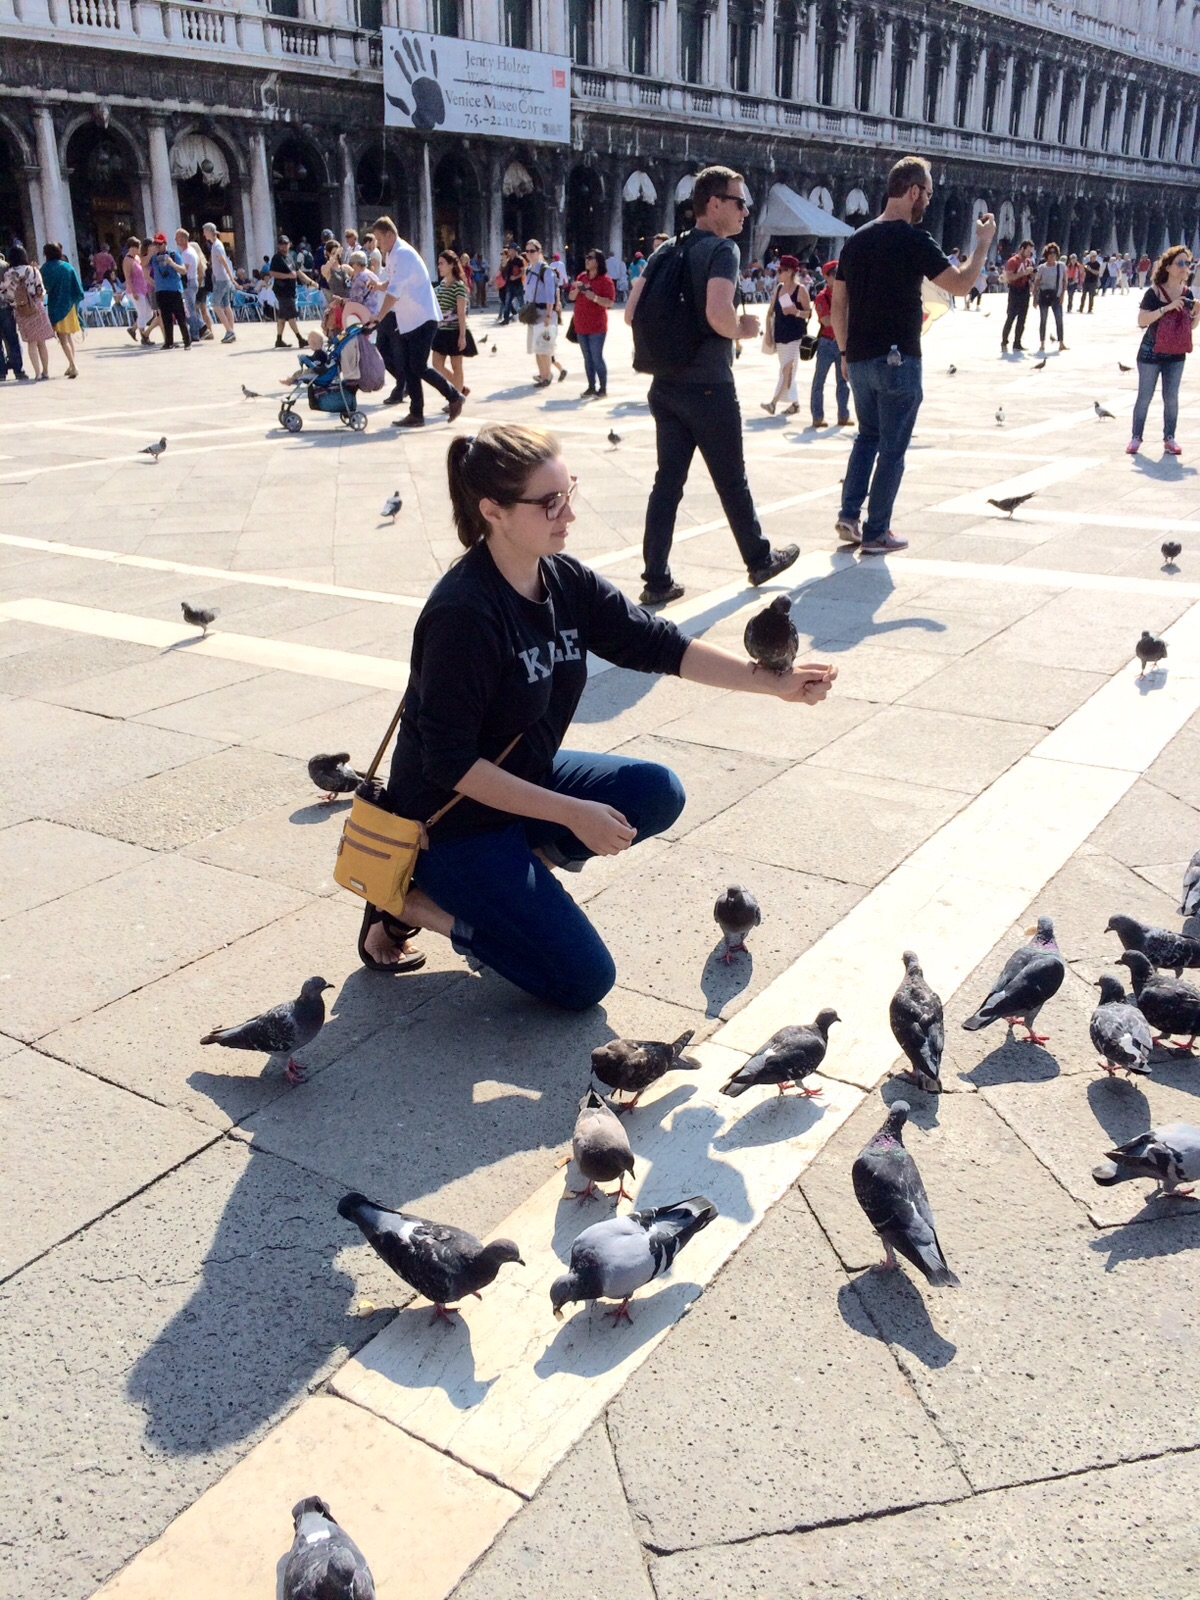 Pickpockets are for the birds.